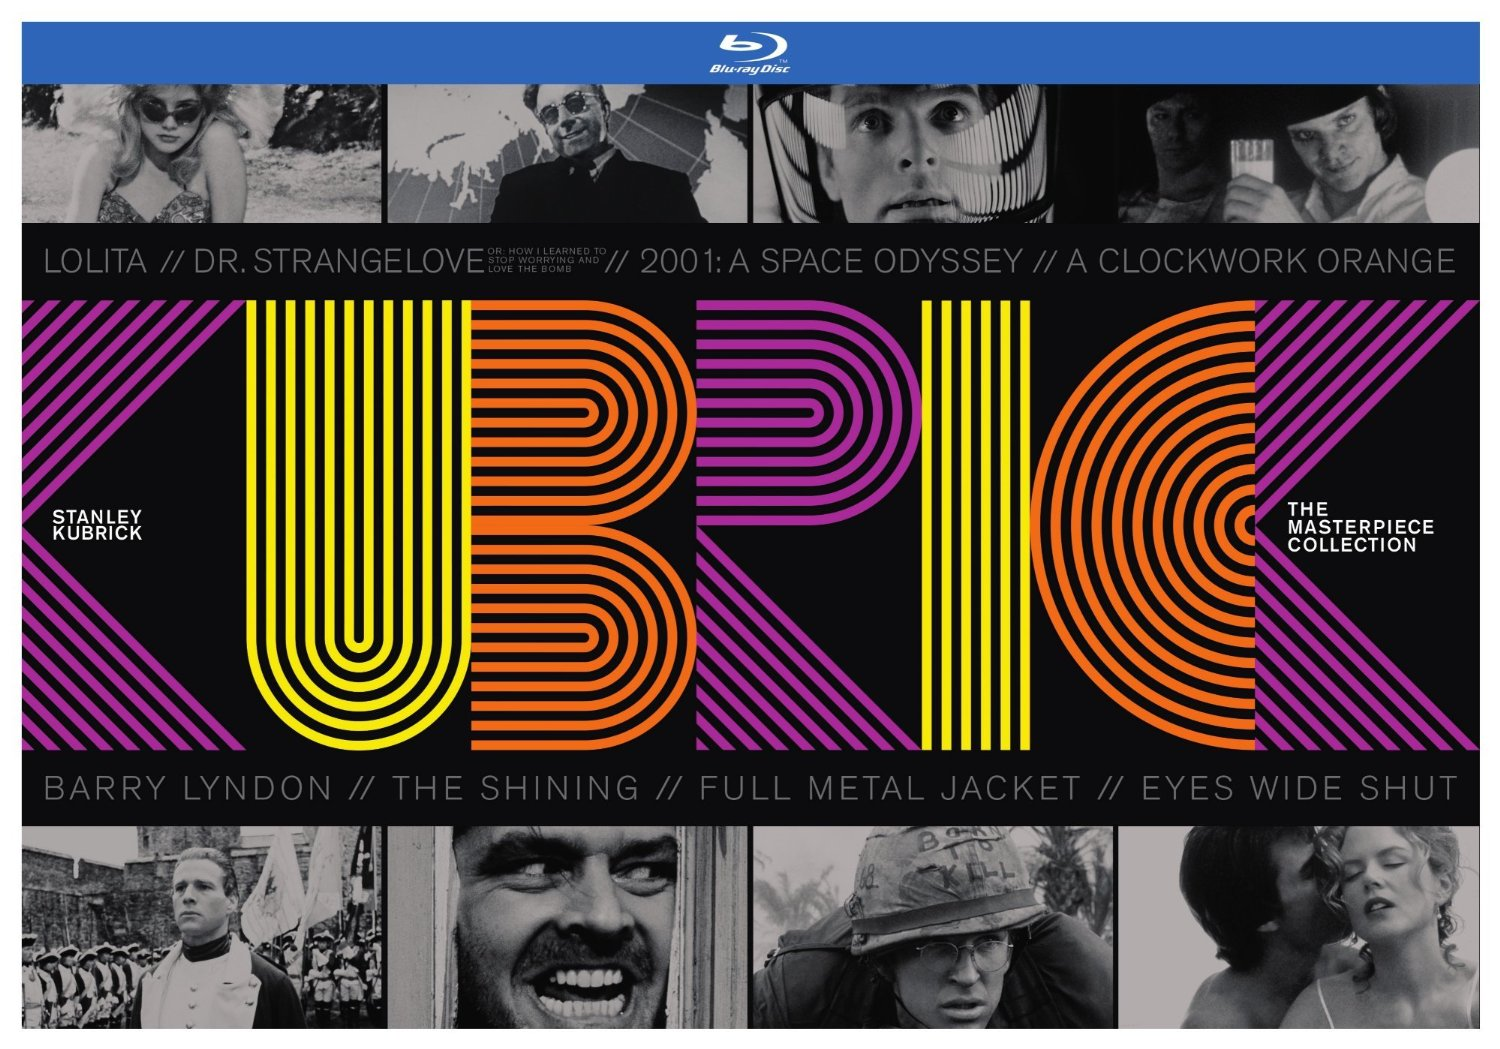 Stanley Kubrick – The Masterpiece Collection – Edizione italiana in Blu-Ray 2014